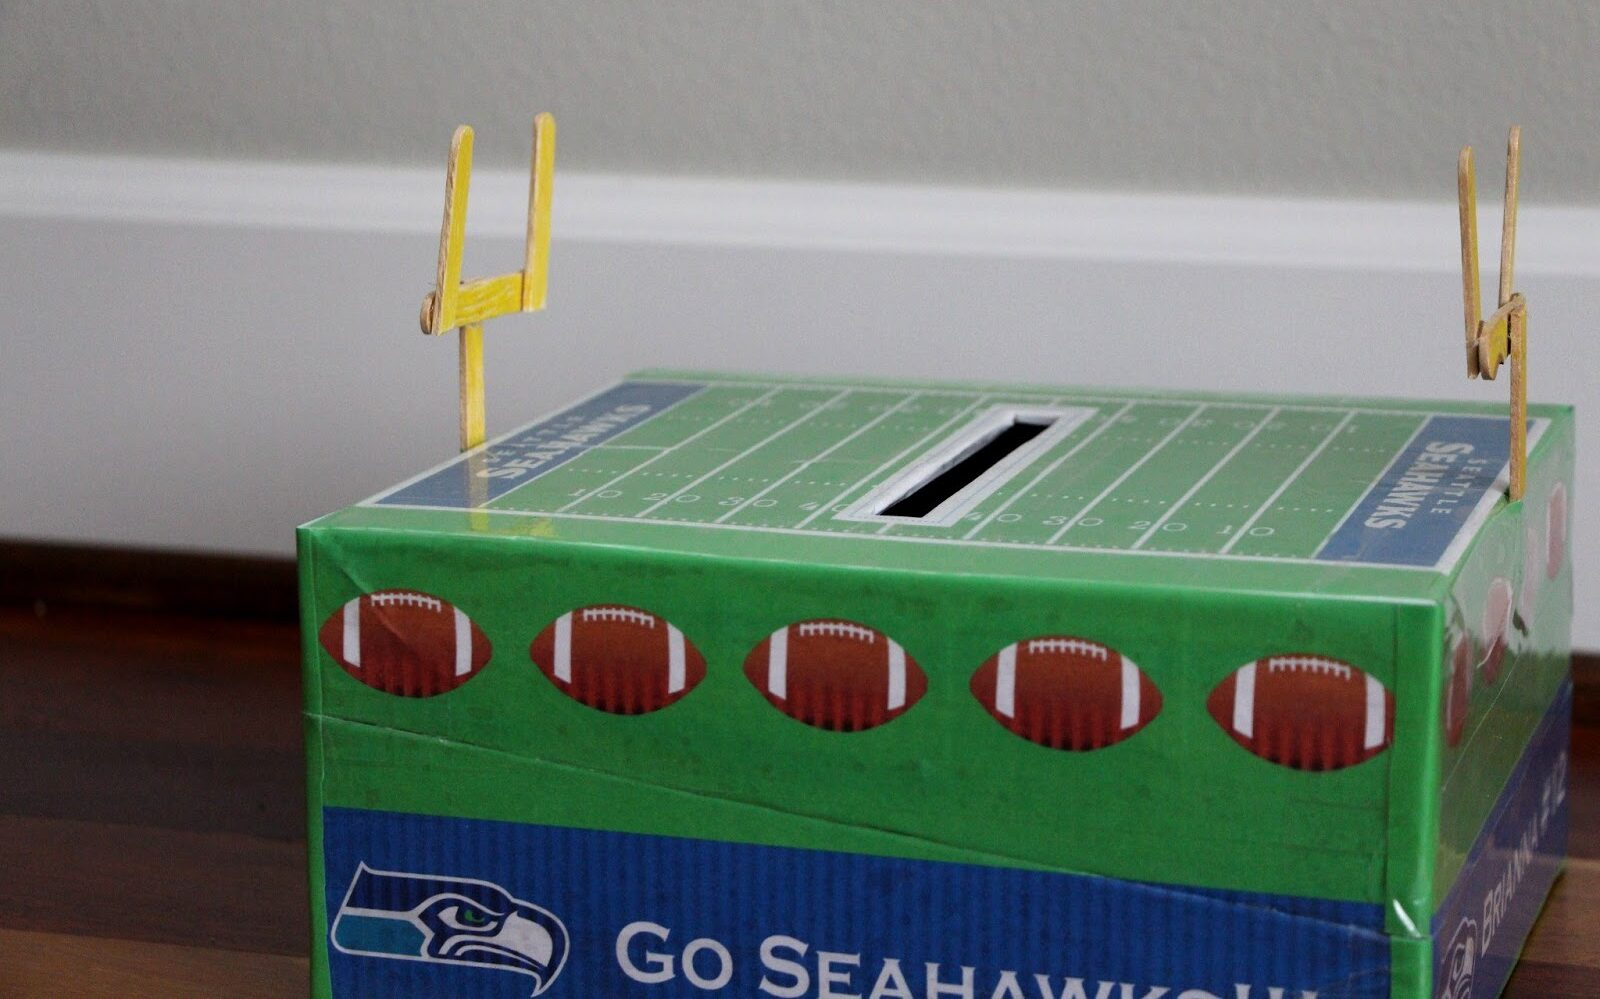 Seahawks football field box for Valentine's Day | The Dating Divas